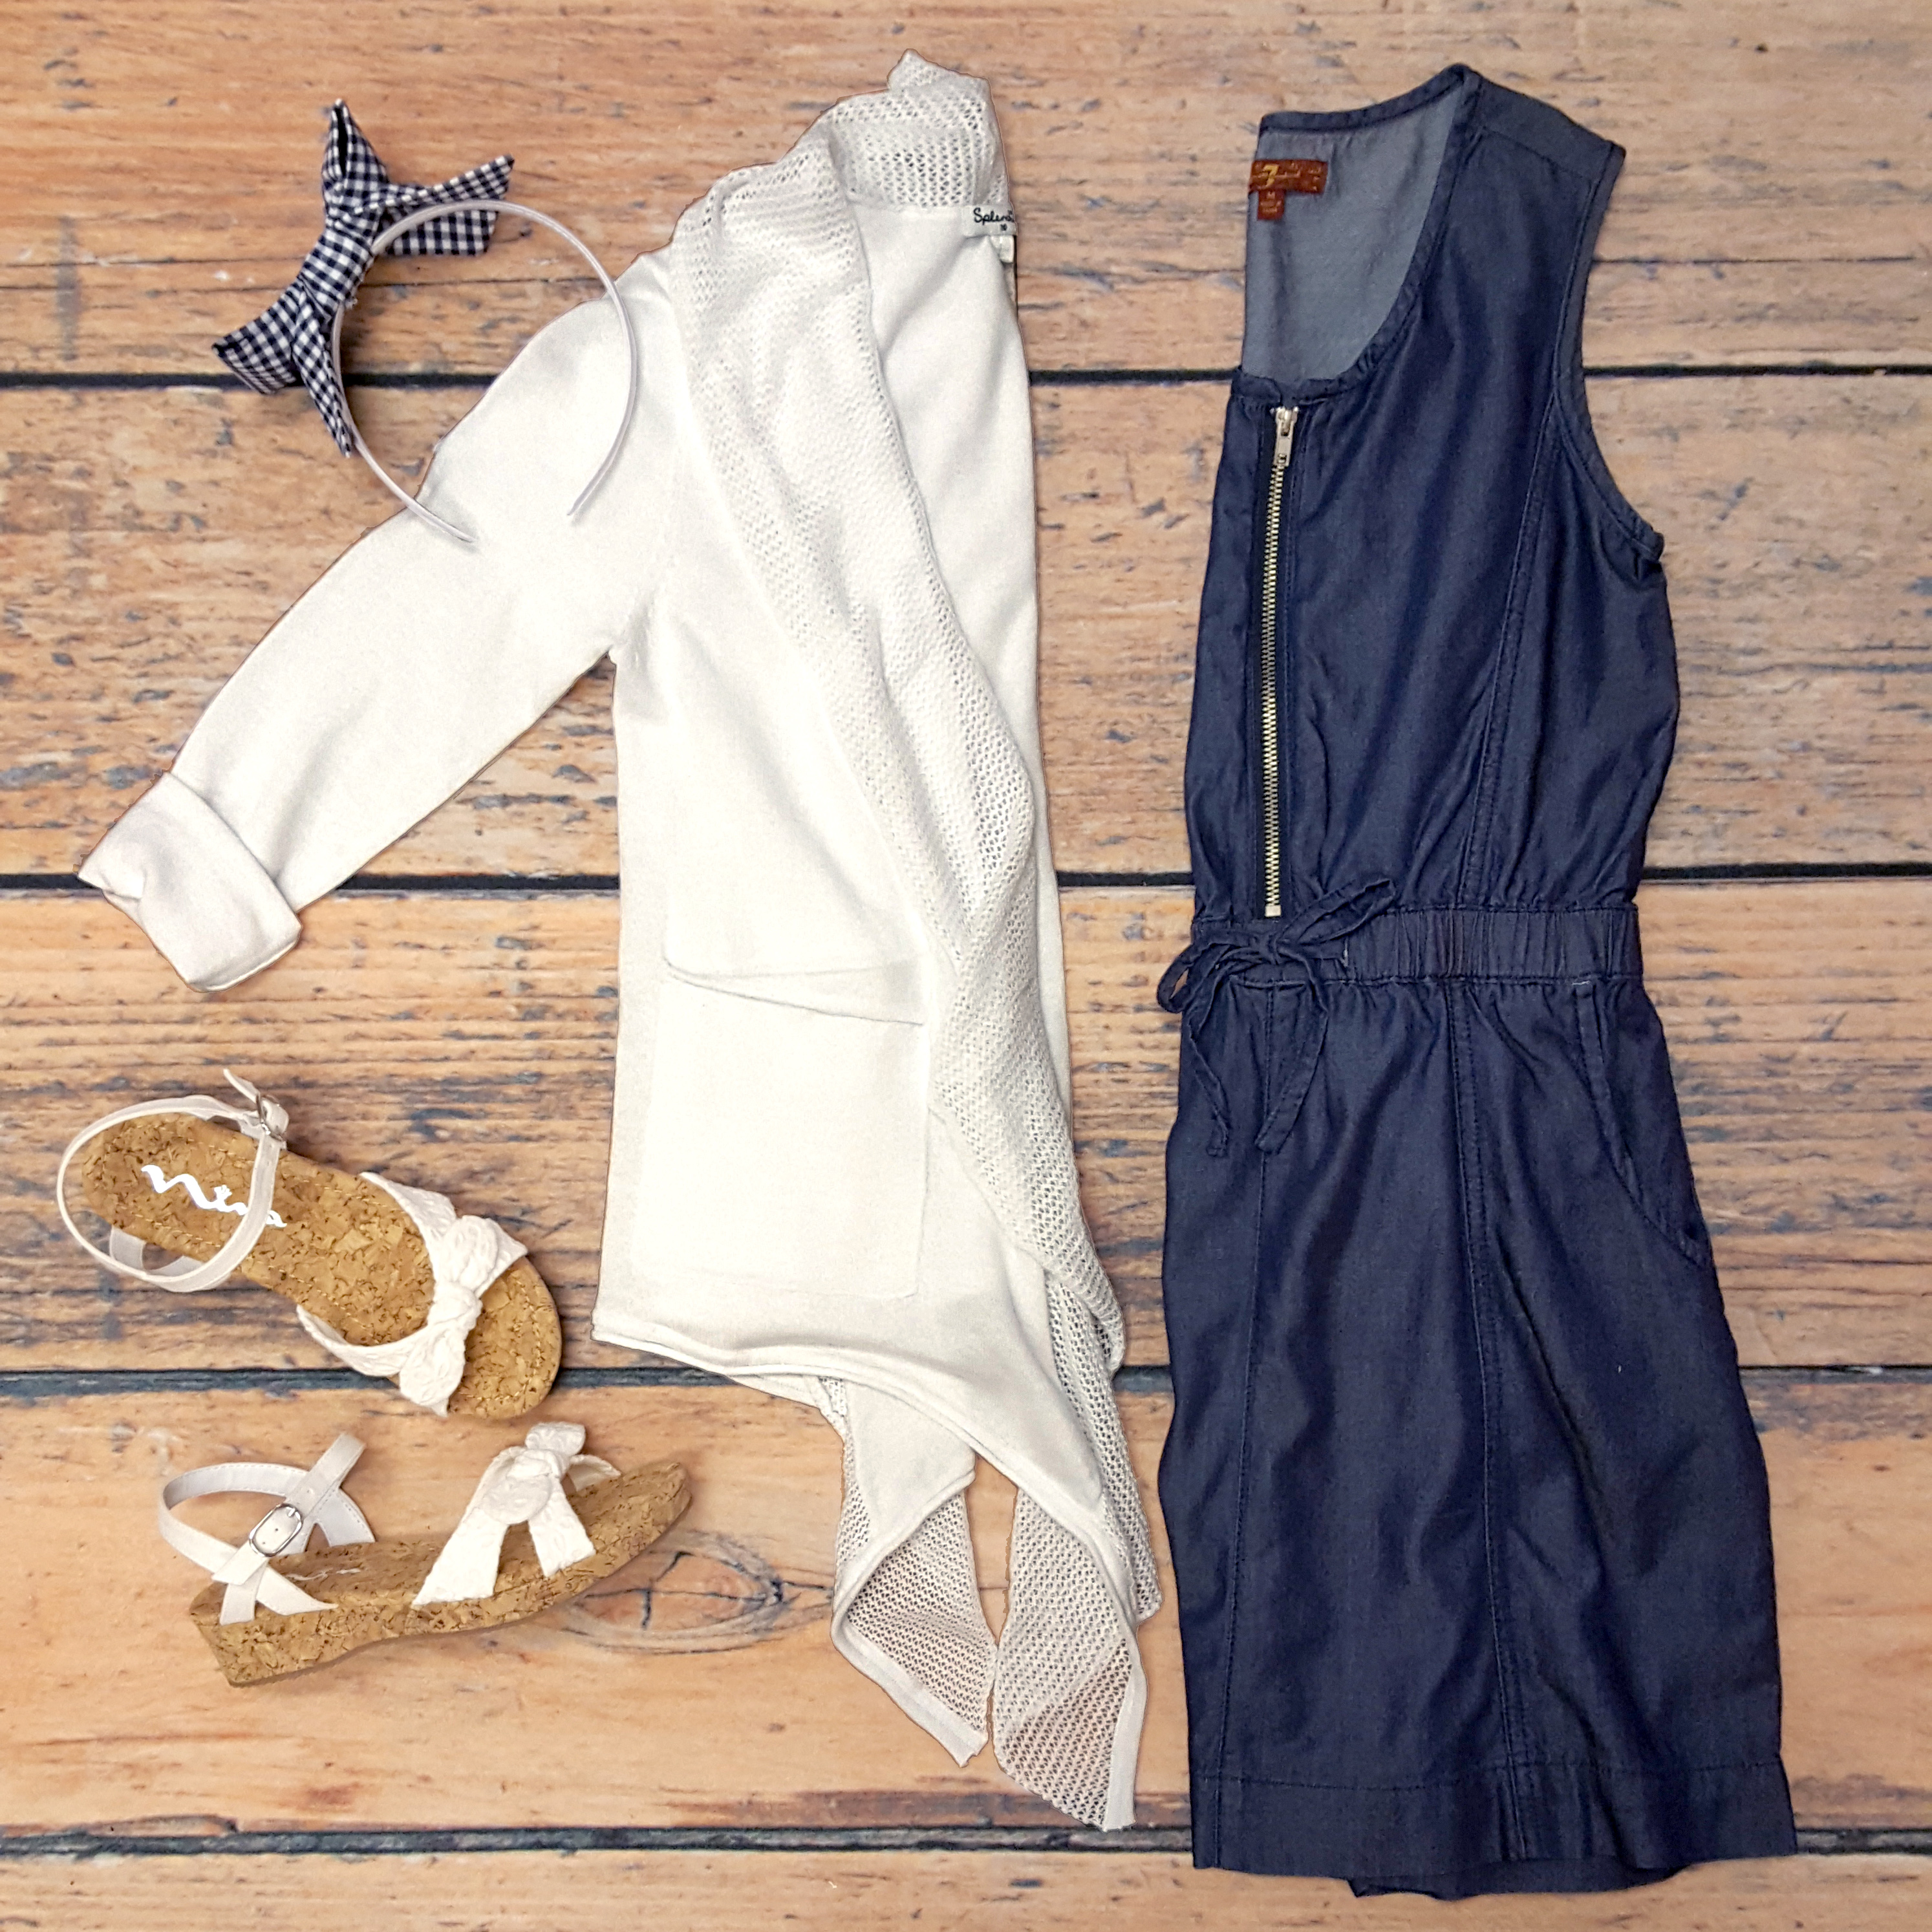 7 for All Mankind Dress,Splendid Cardi,Nina Wedges